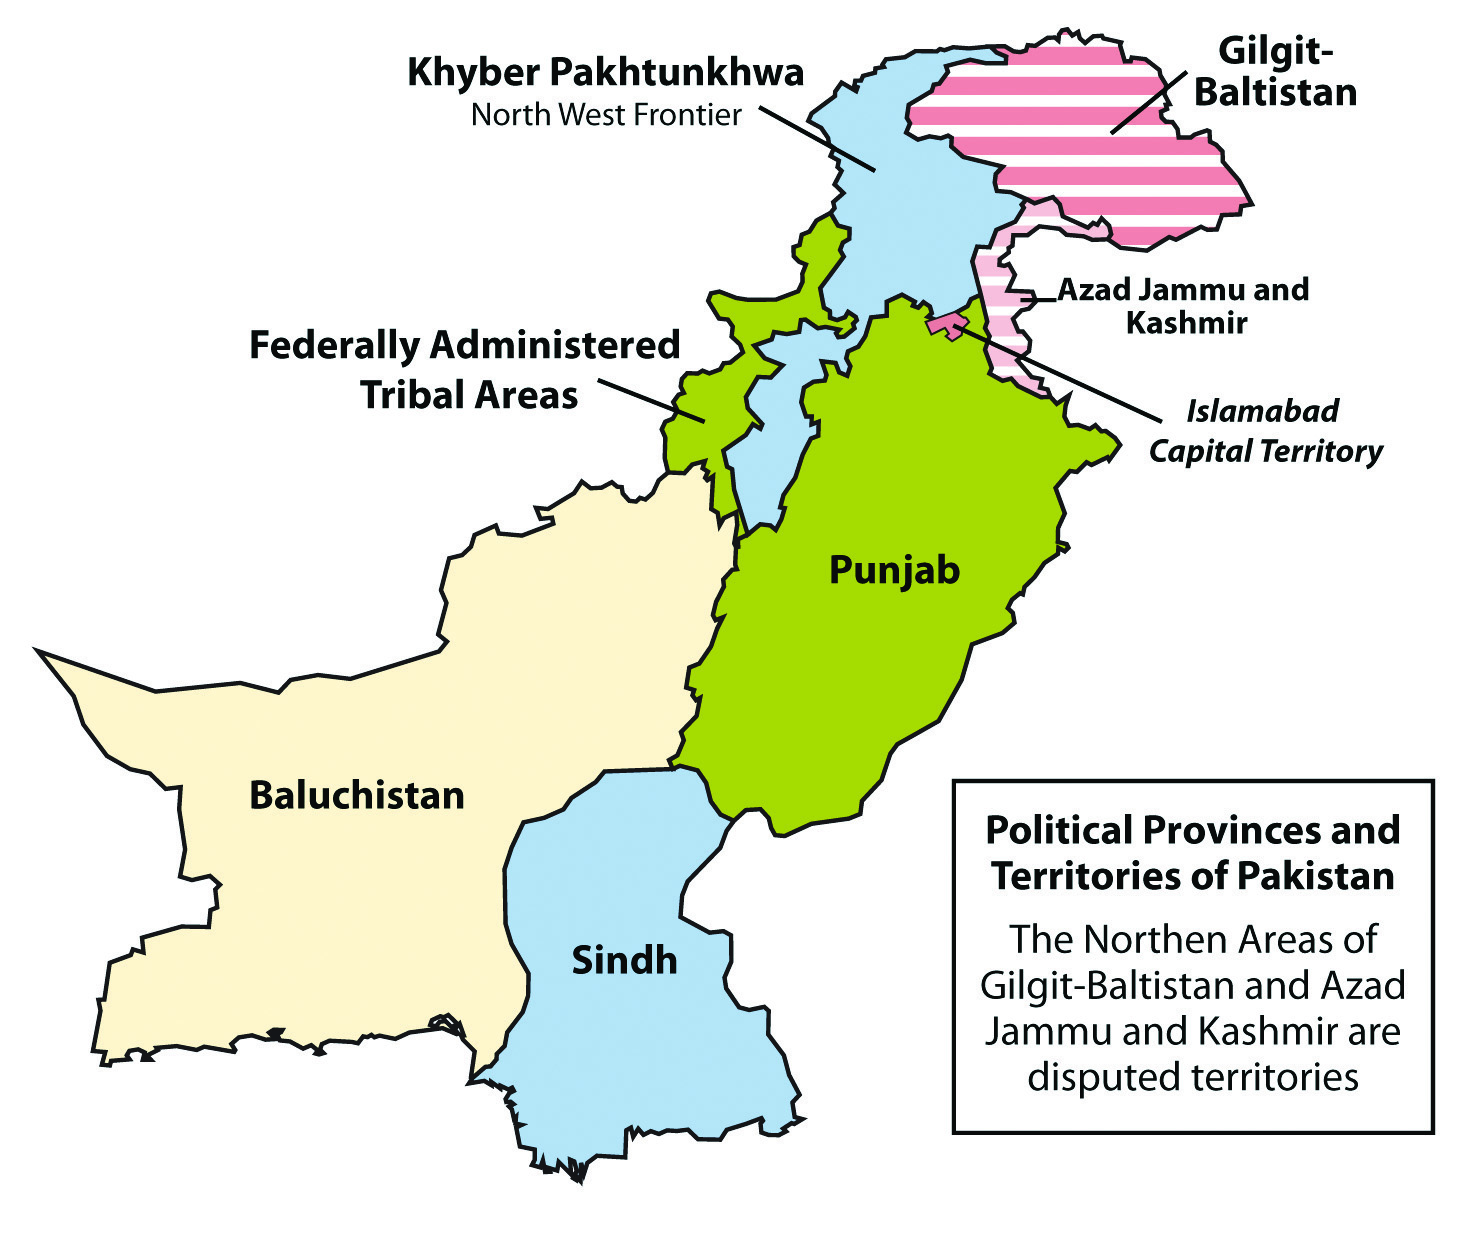 geography map of world with S12 03 Pakistan And Bangladesh on Photos insolites humour together with Fiche4 as well 319733495 moreover Zambia furthermore Le Tarn.